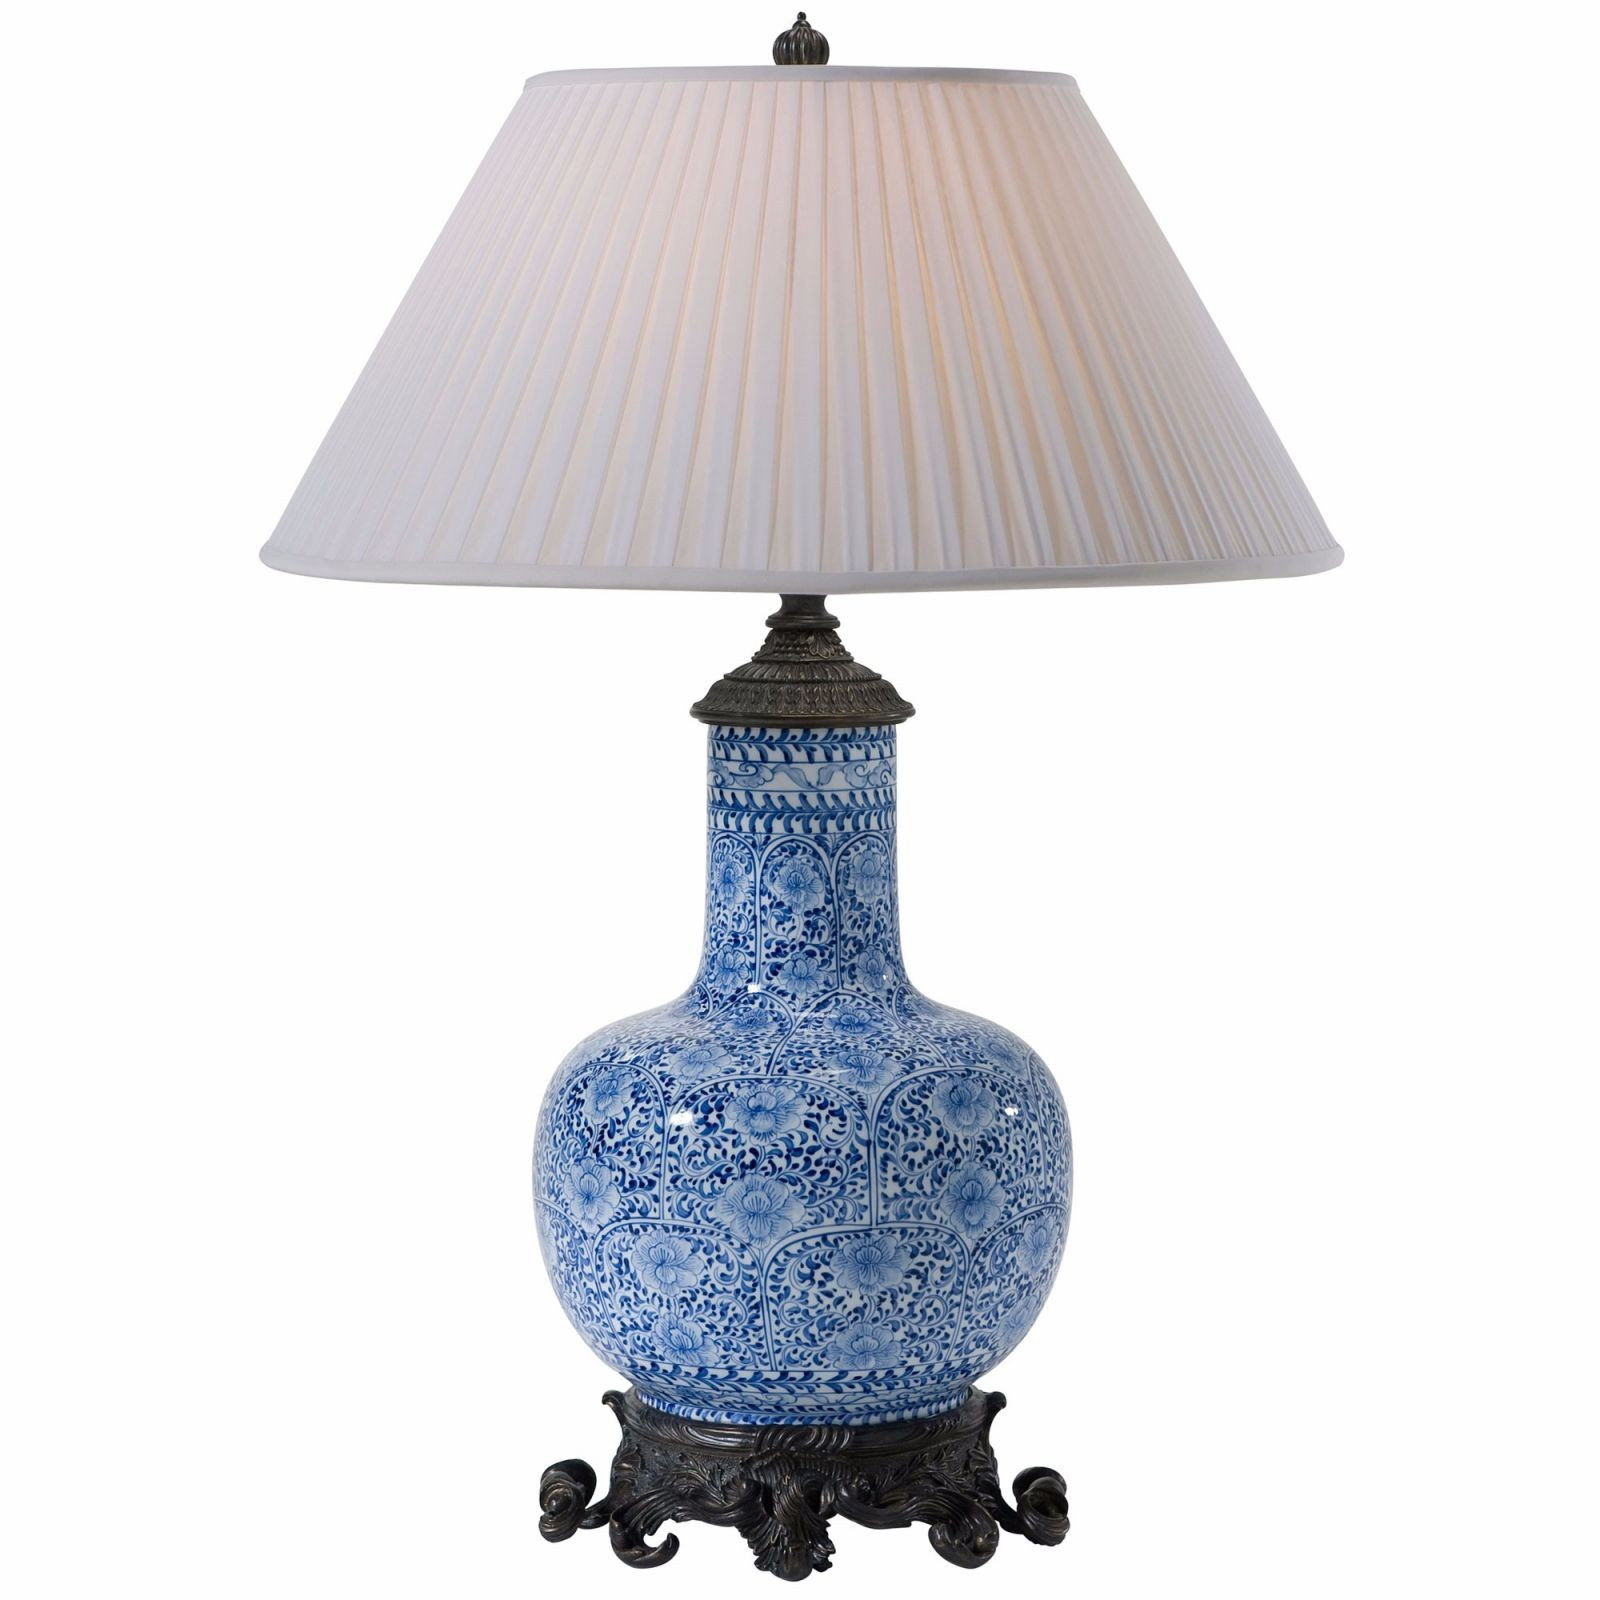 Blue And White Ceramic Table Lamp Table Lamps From